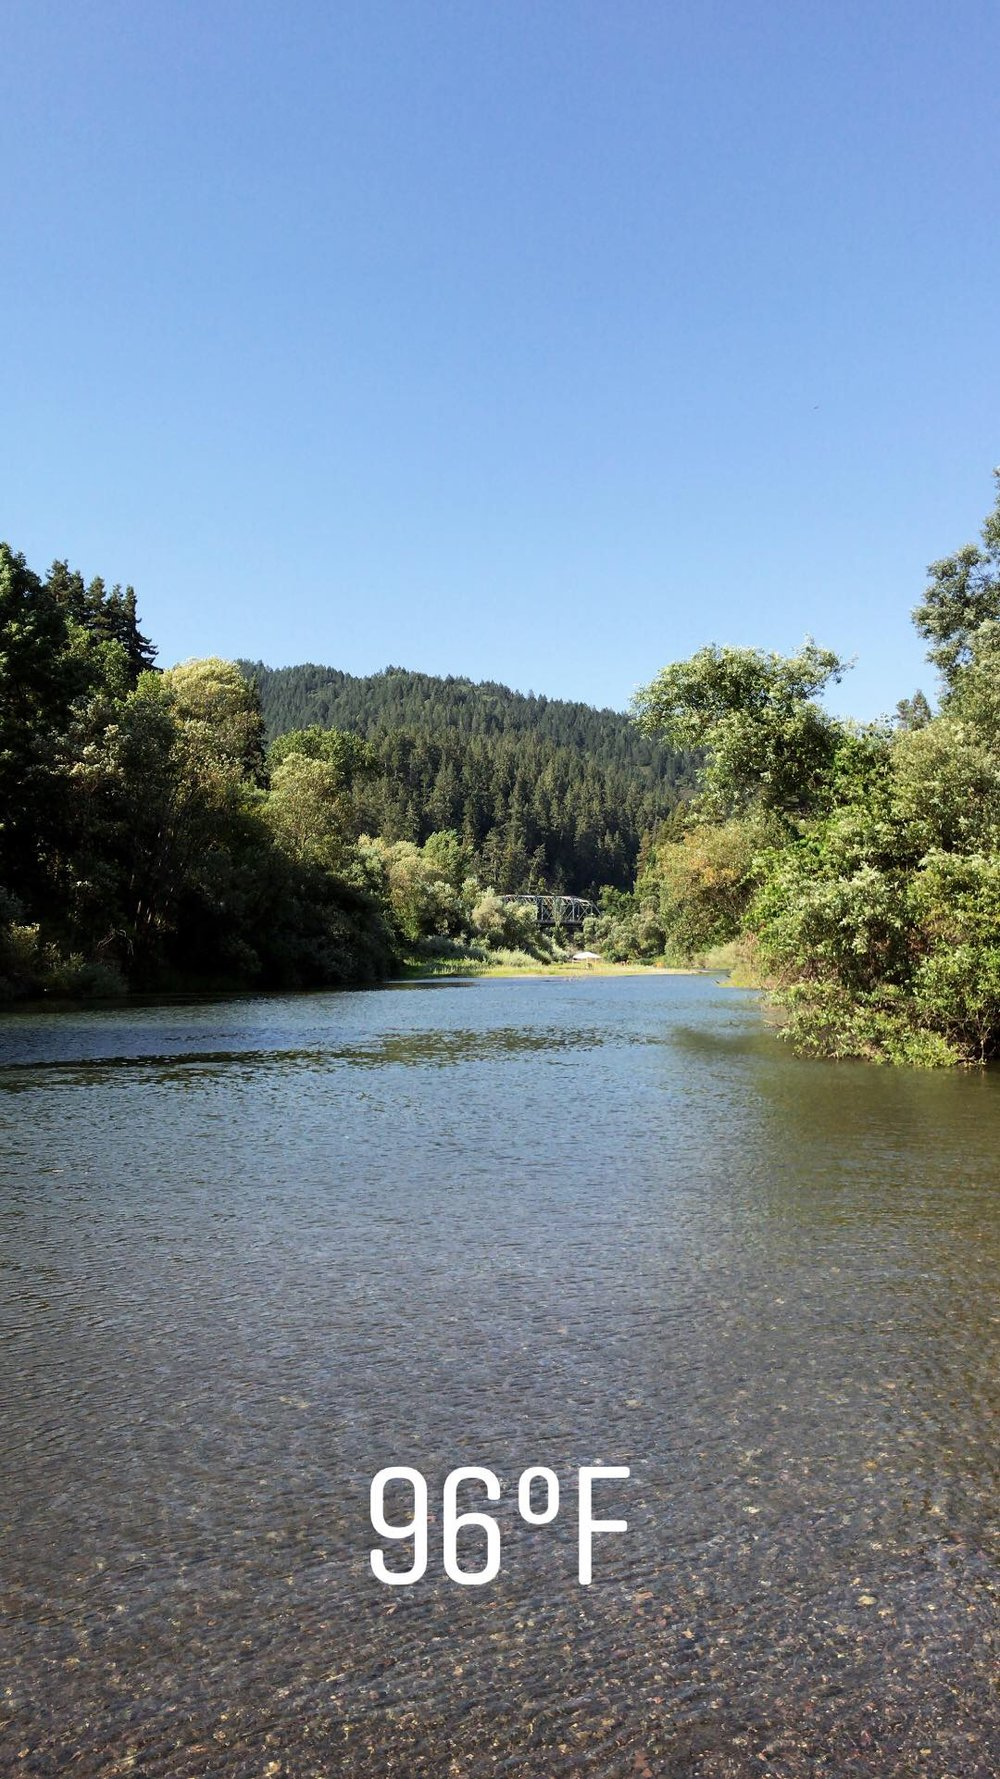 Staying chill in the Russian River while enjoying the late august summer heat waves.